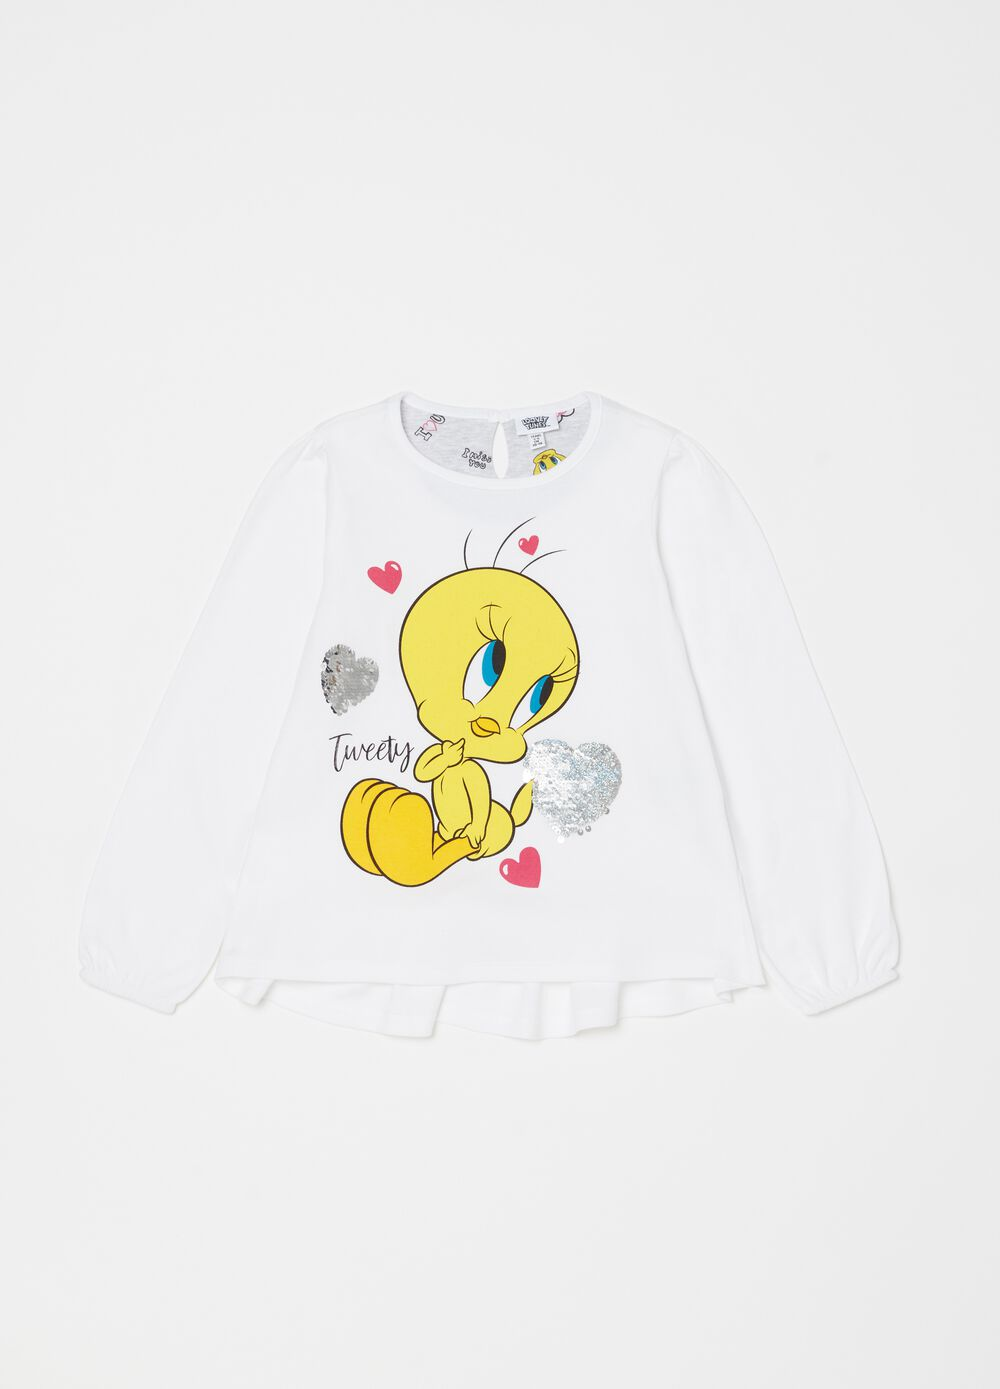 Warner Bros Tweetie Pie print pyjamas